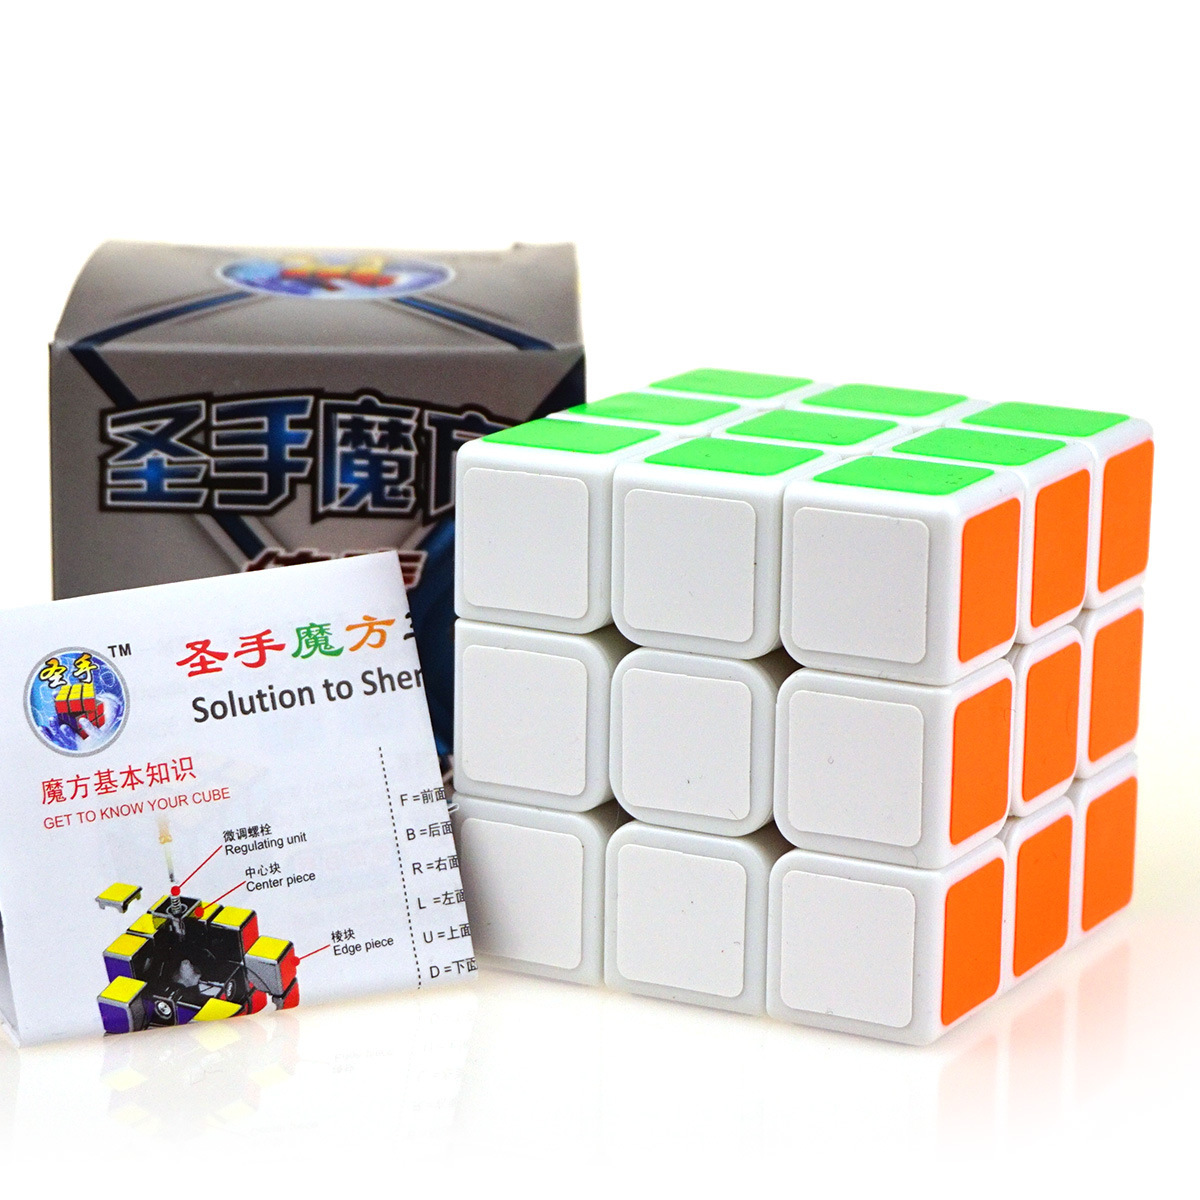 For beginners three cube genuine masters children adult educational toys a wrong speedsolving game